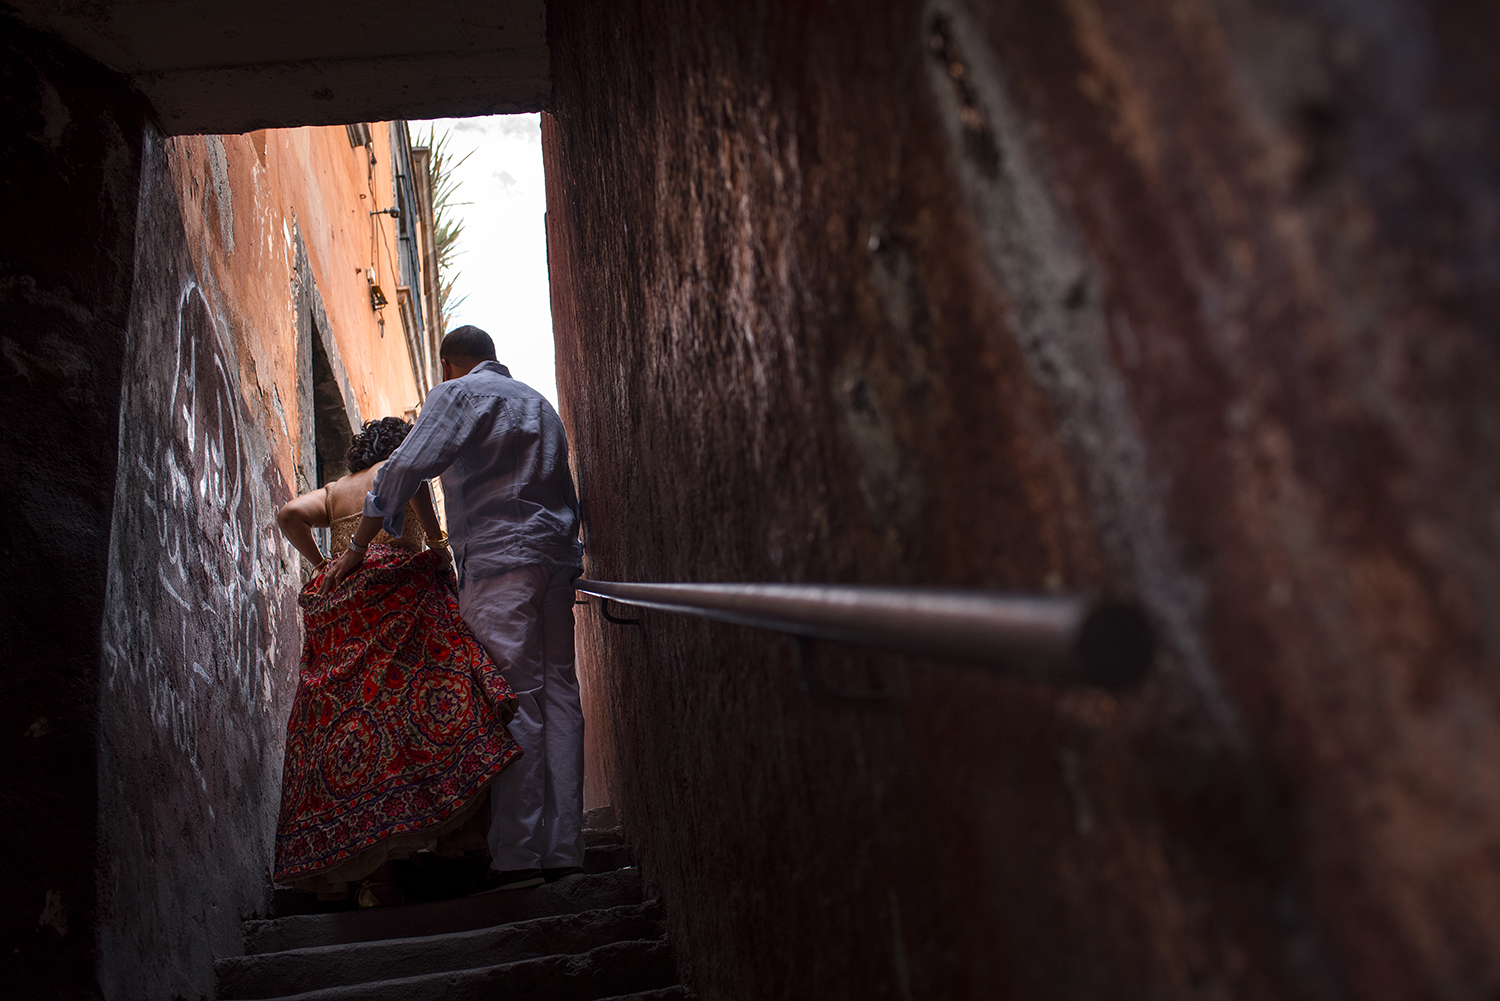 indian_wedding_san_miguel_de_allende_chio_garcia_photographer (2).jpg